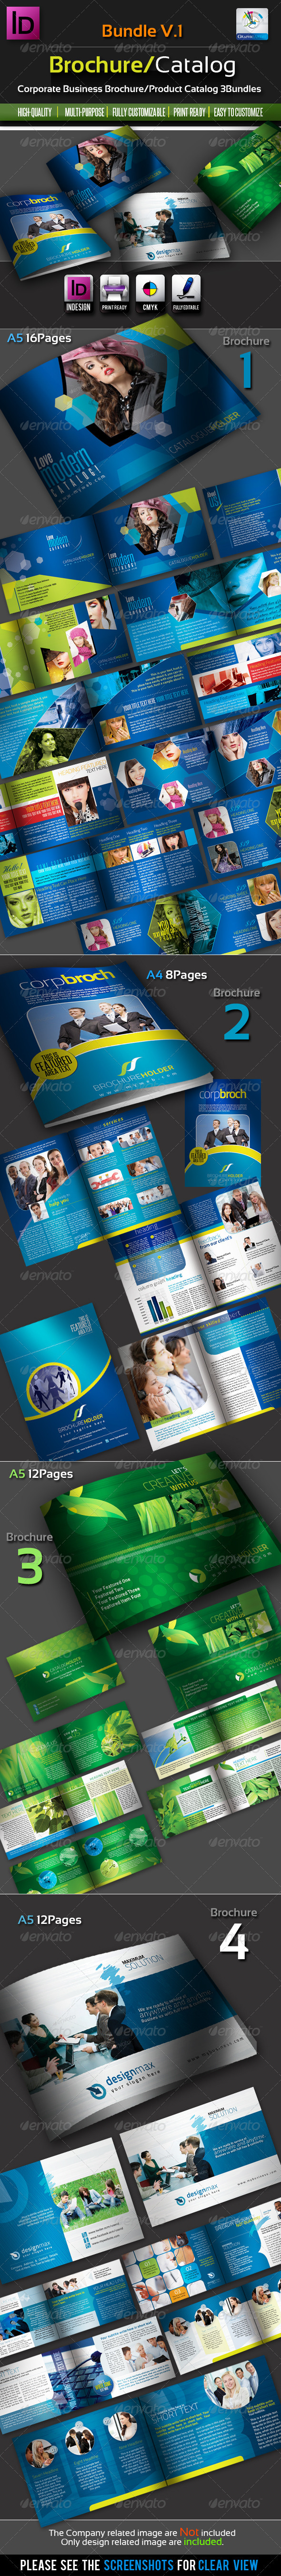 GraphicRiver Corporate Brochure Catalogue Bundles v.1 2590775